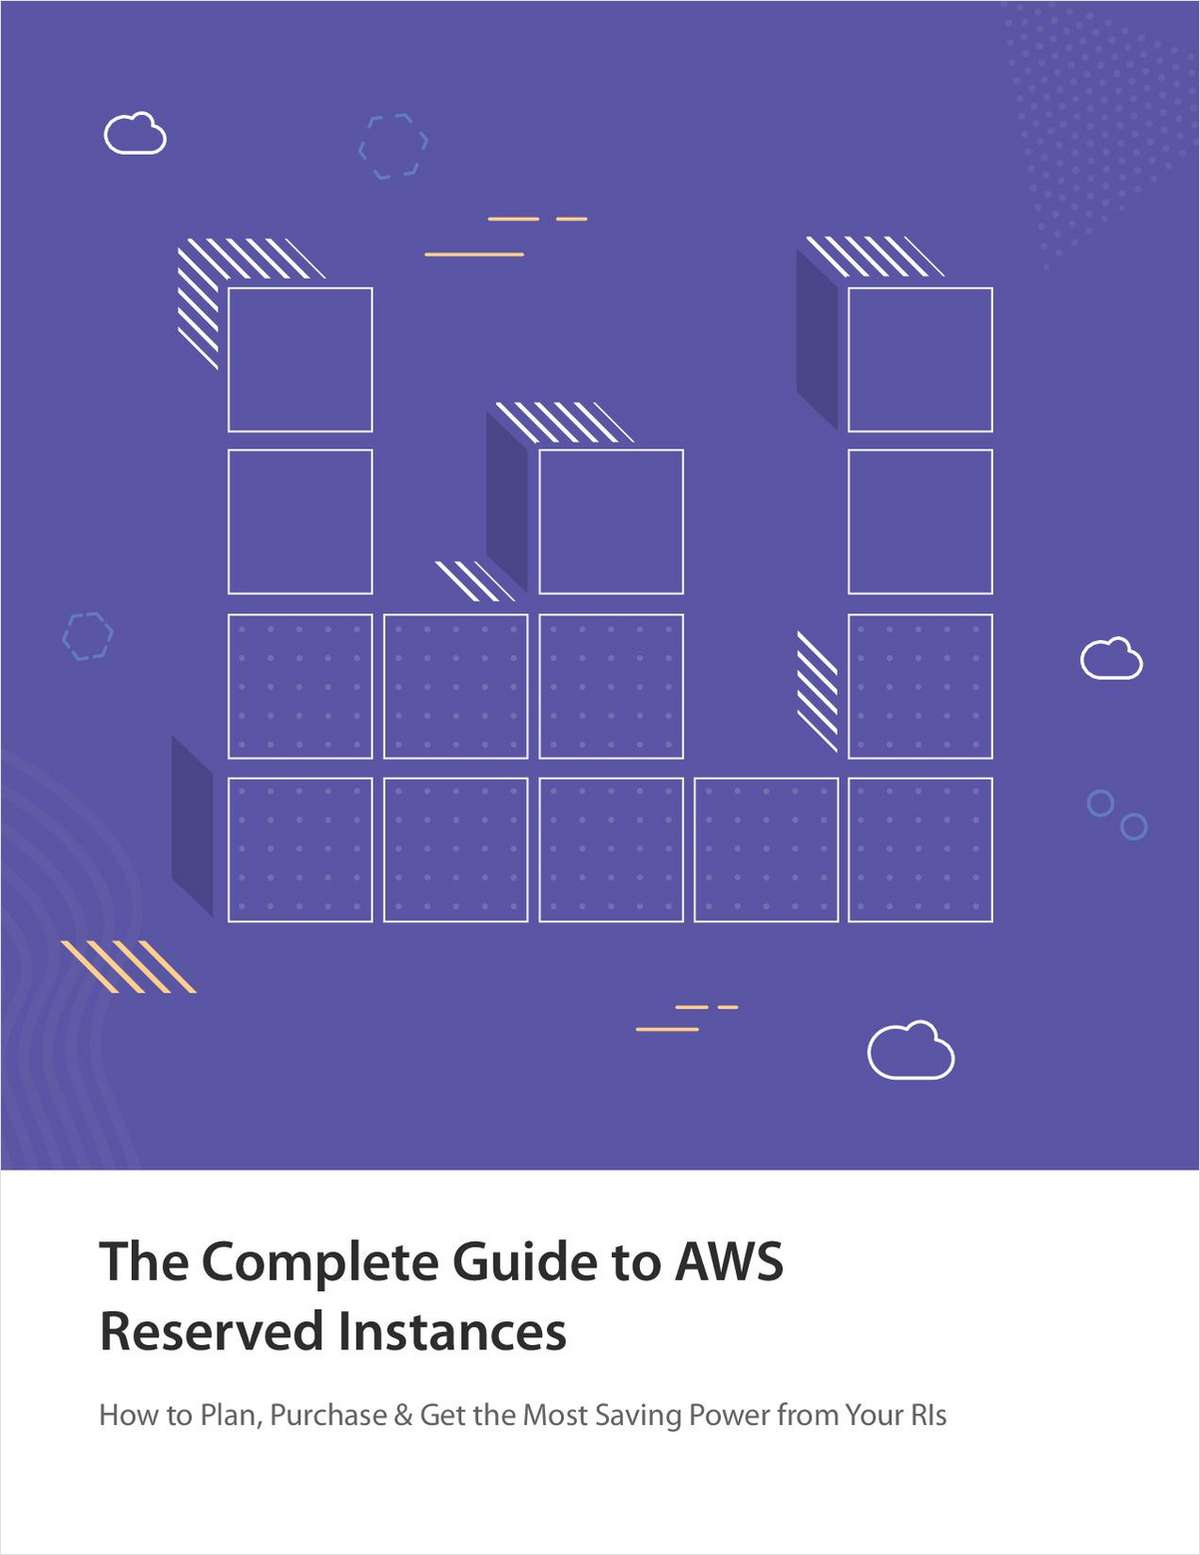 The Complete Guide to Saving with AWS Reserved Instances